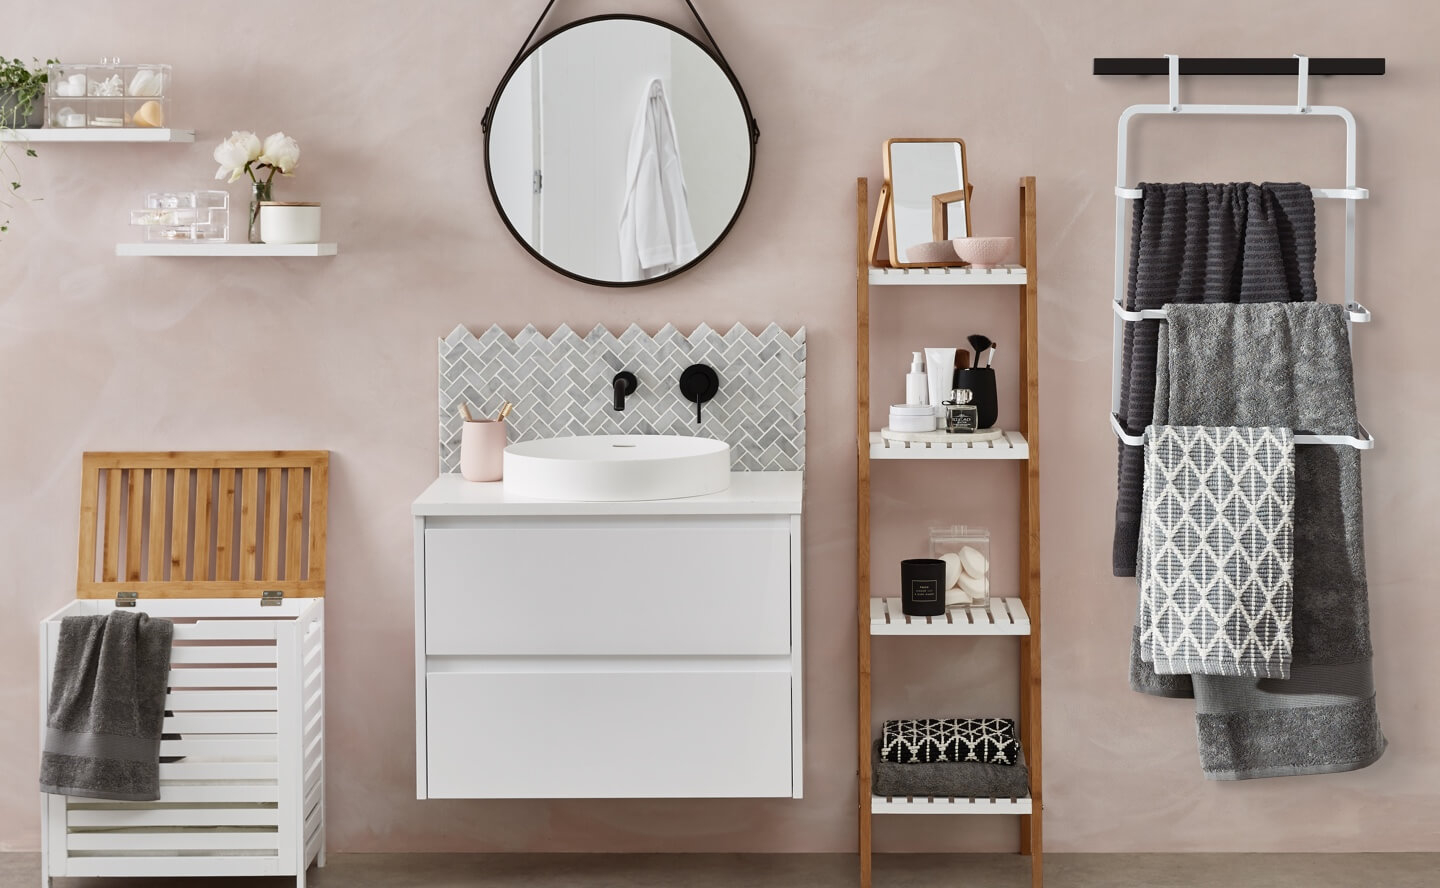 Best 15 Brilliant Bathroom Storage Ideas For Small Spaces for size 1440 X 888